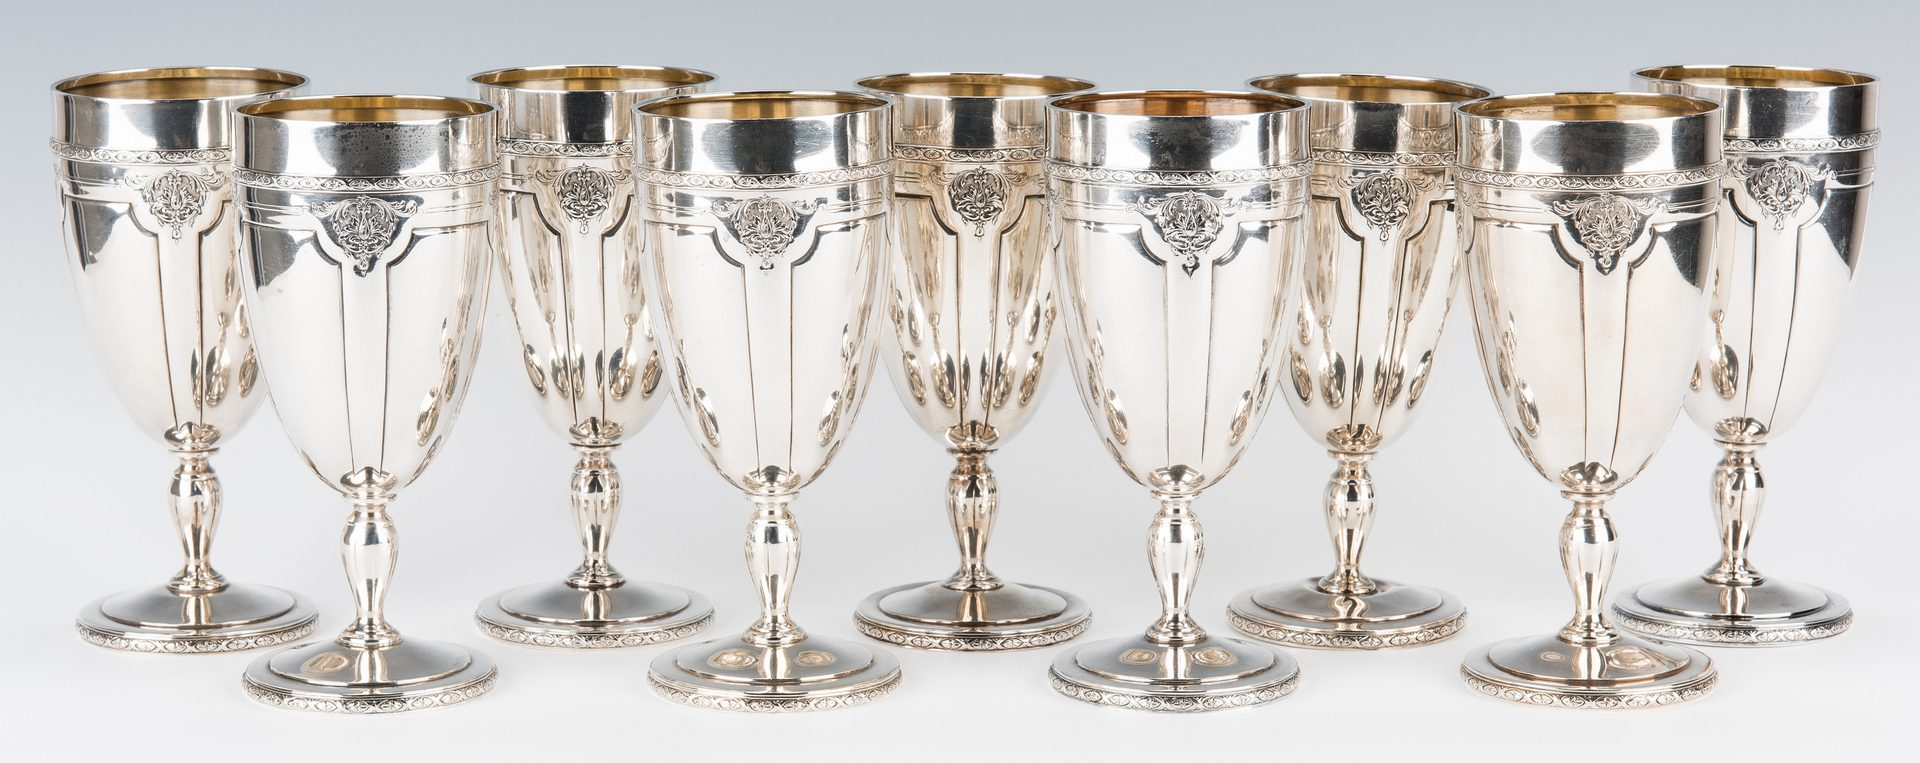 Lot 51: 12 Towle Sterling Goblets – Louis XIV